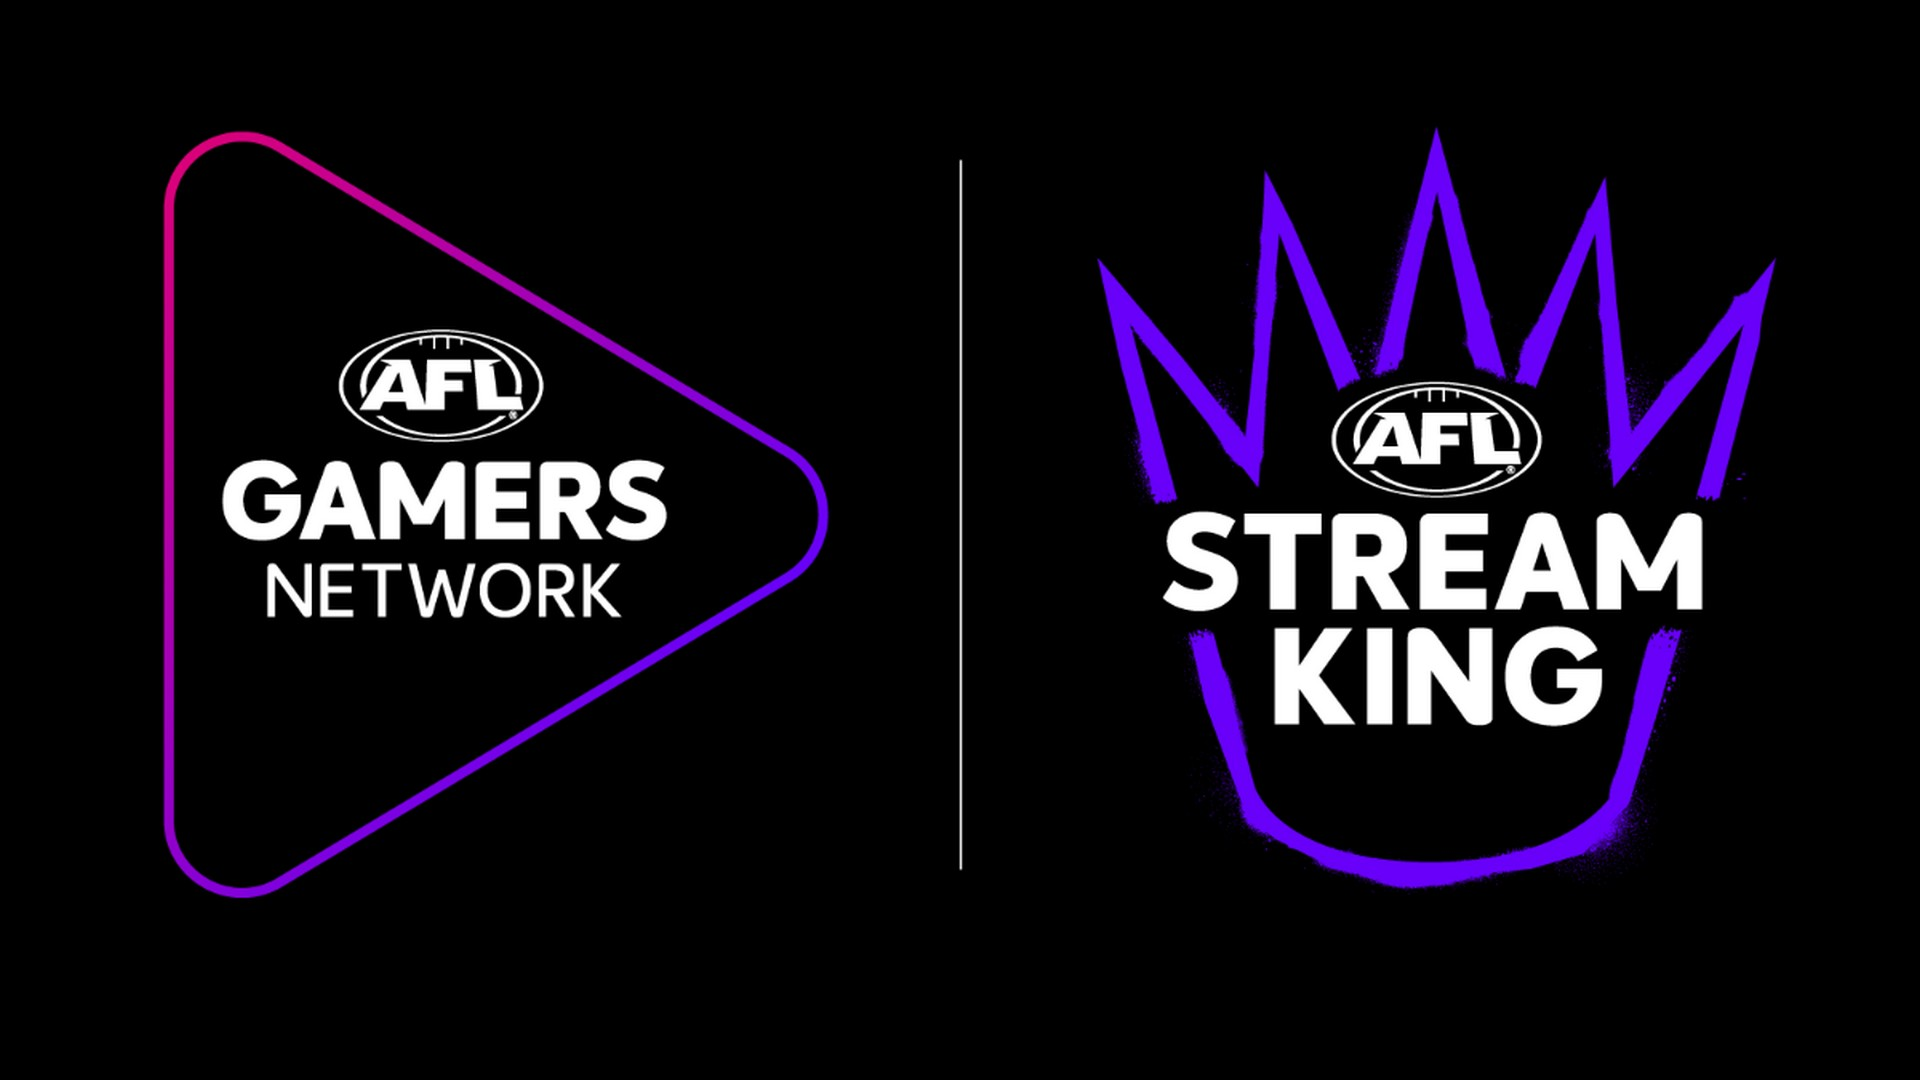 AFL Gamers Network To Host Charity Tournament In a Partnership First With Fortnite